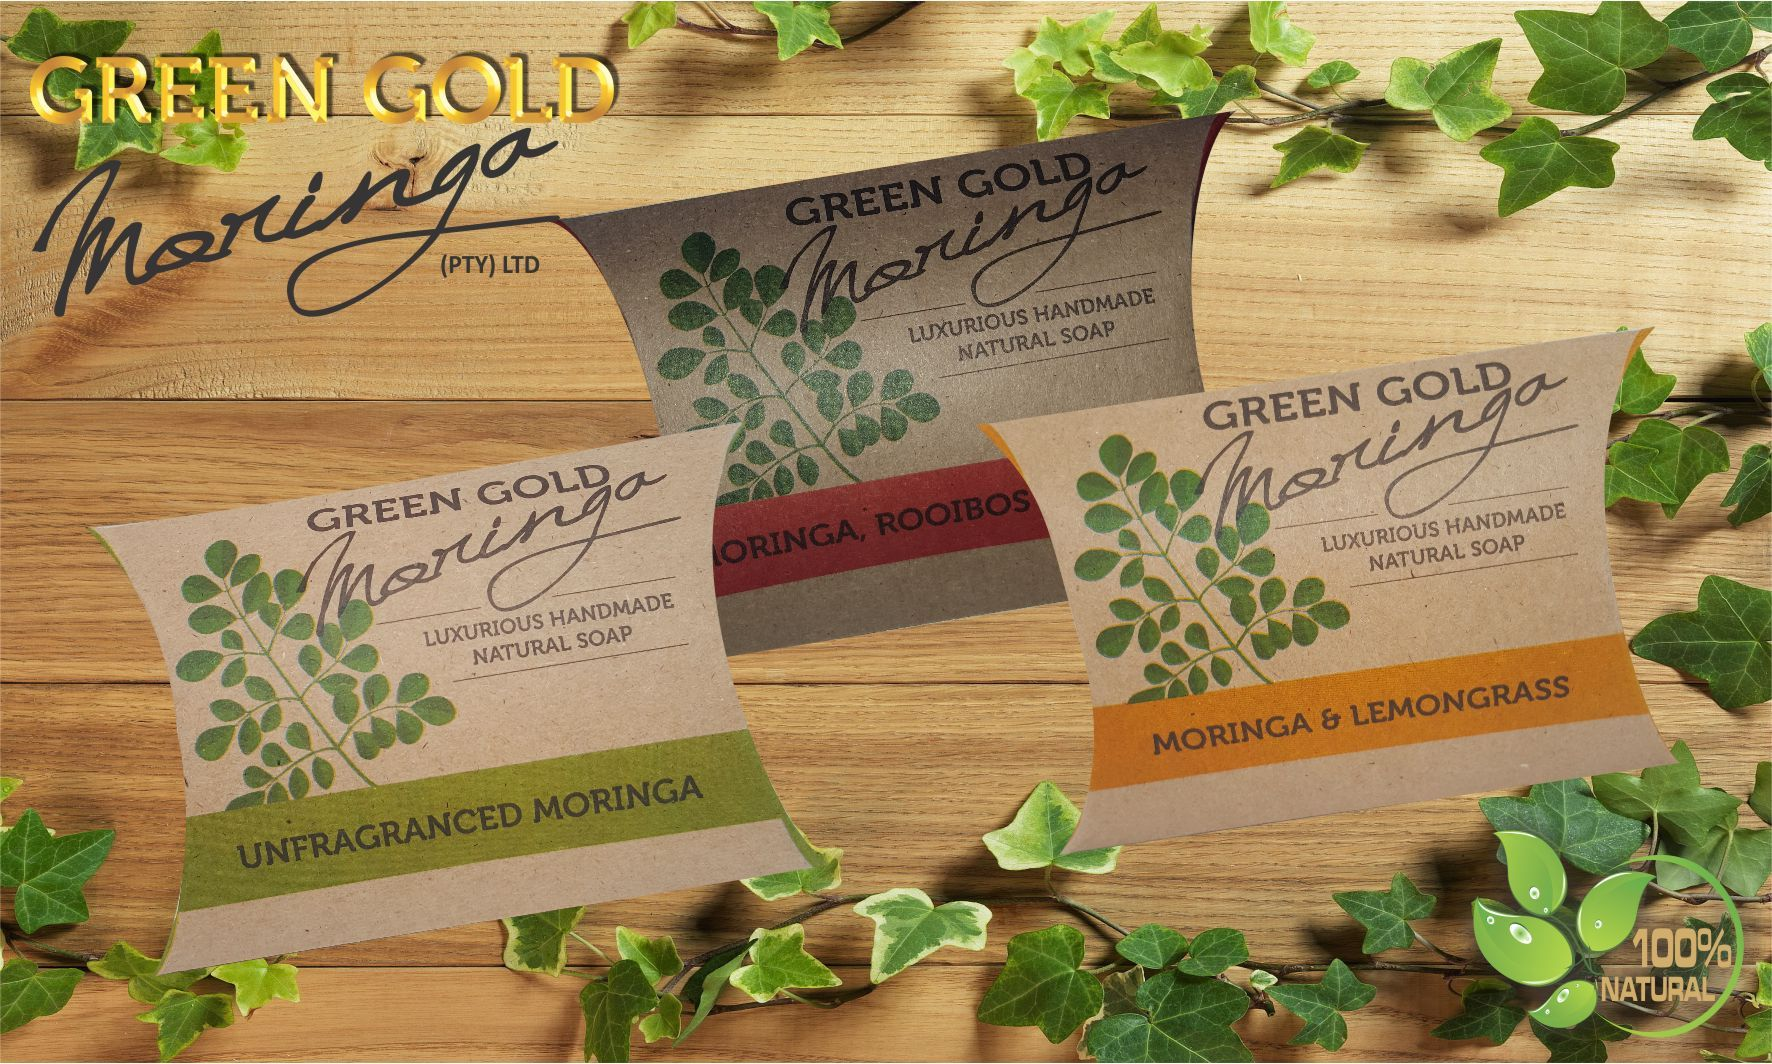 Two NEW Green Gold Moringa Natural Handmade Soaps